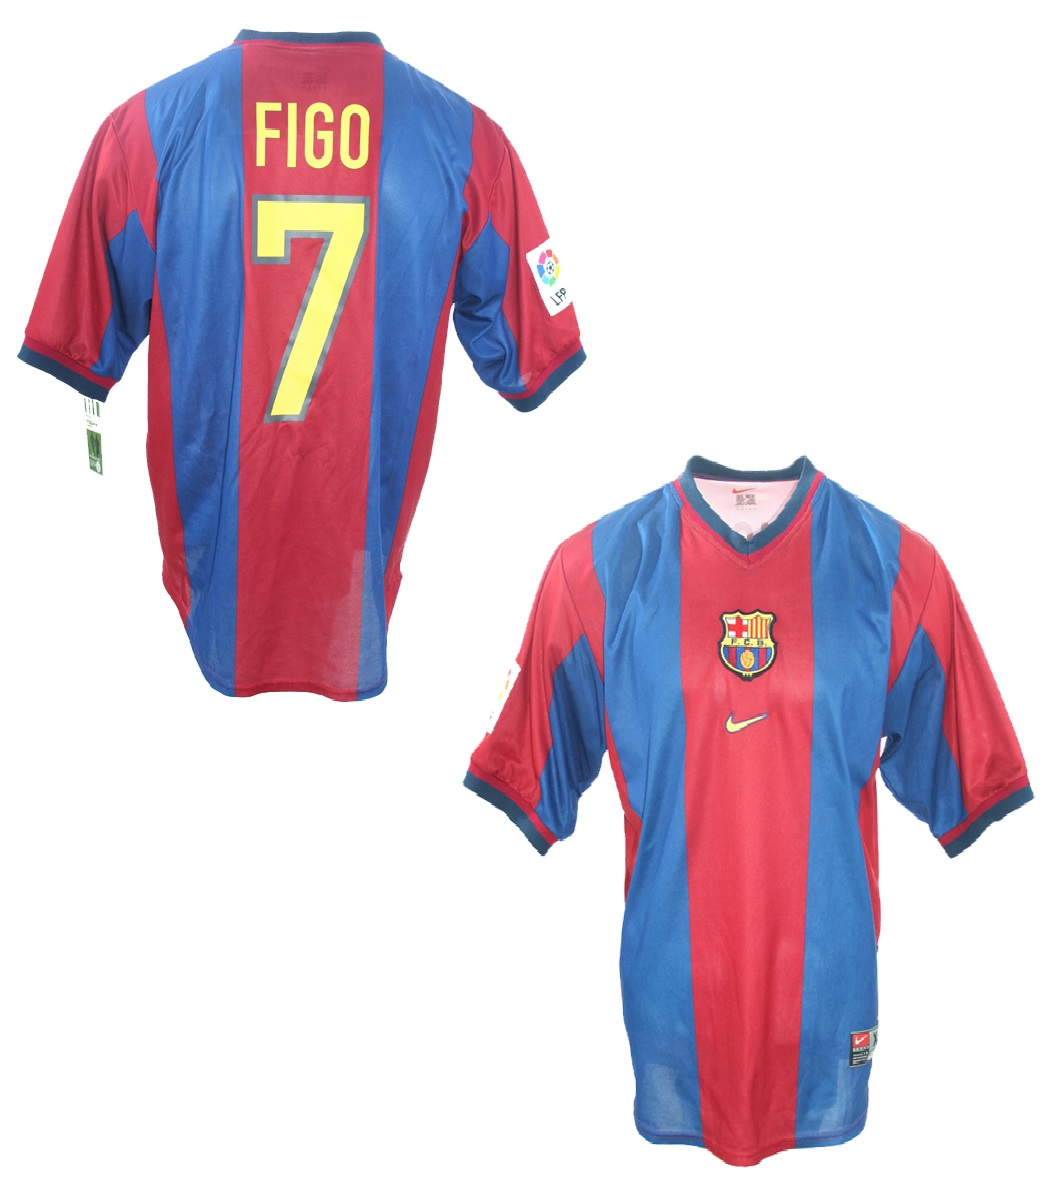 best website 602ea dd14b Nike FC Barcelona jersey 7 Luis Figo 1998/99 home men's S/M ...